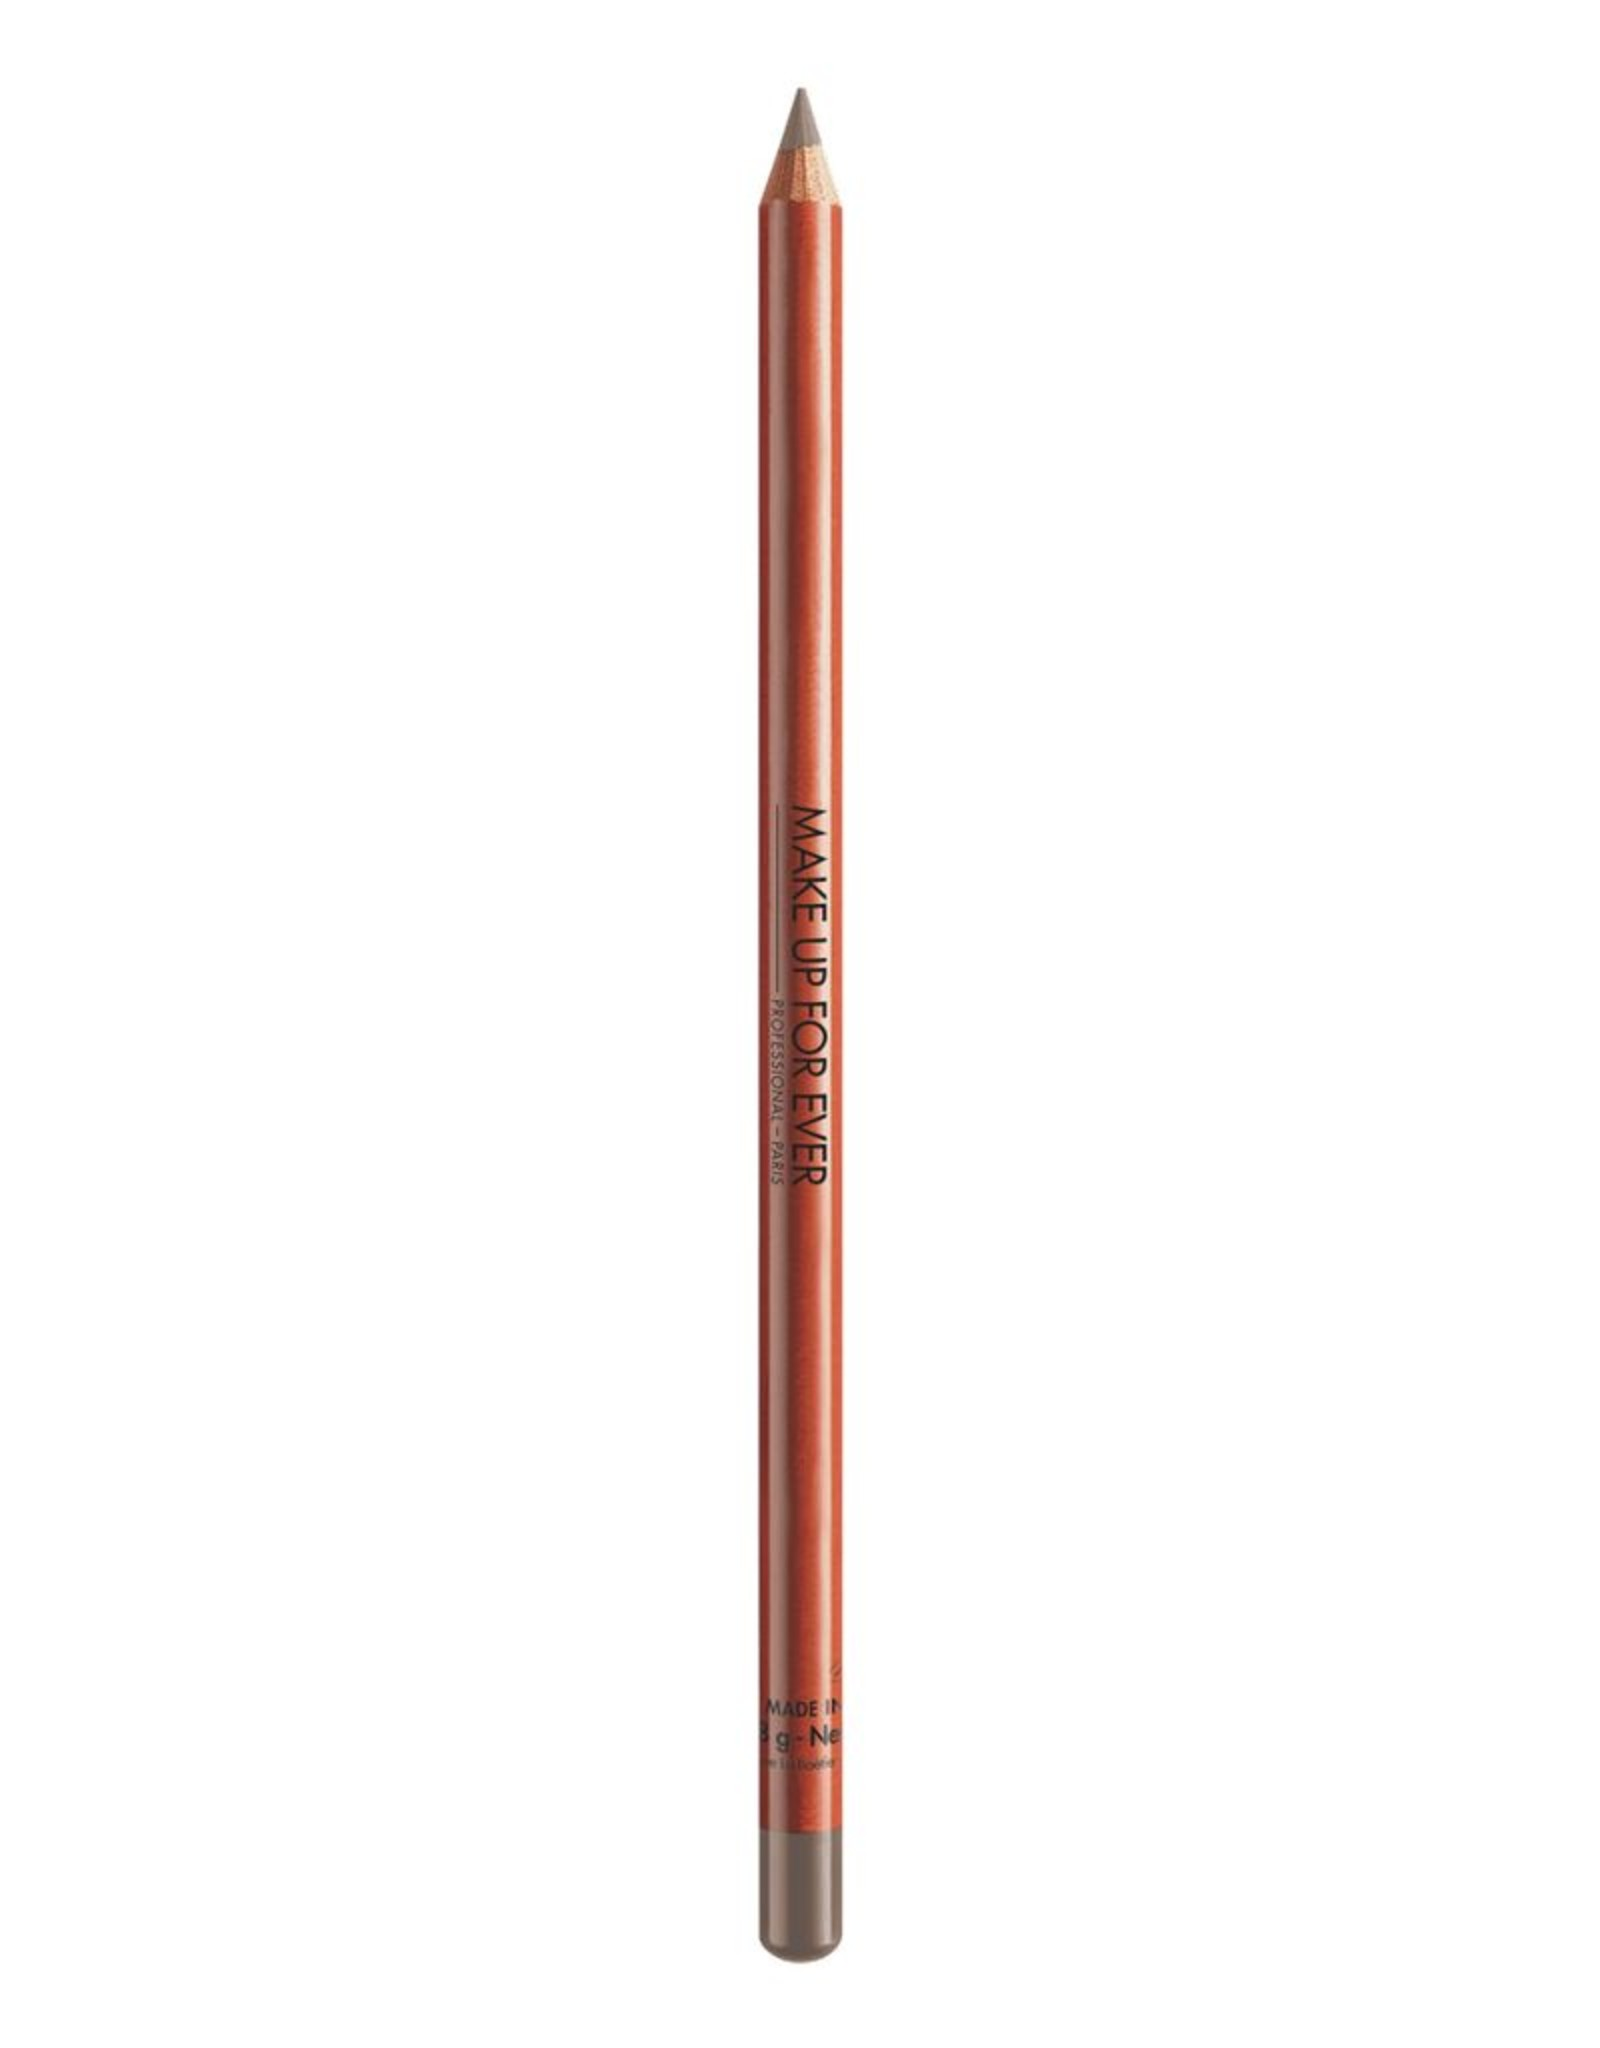 MUFE CRAYON YEUX 1,8gN6 taupe /  taupe